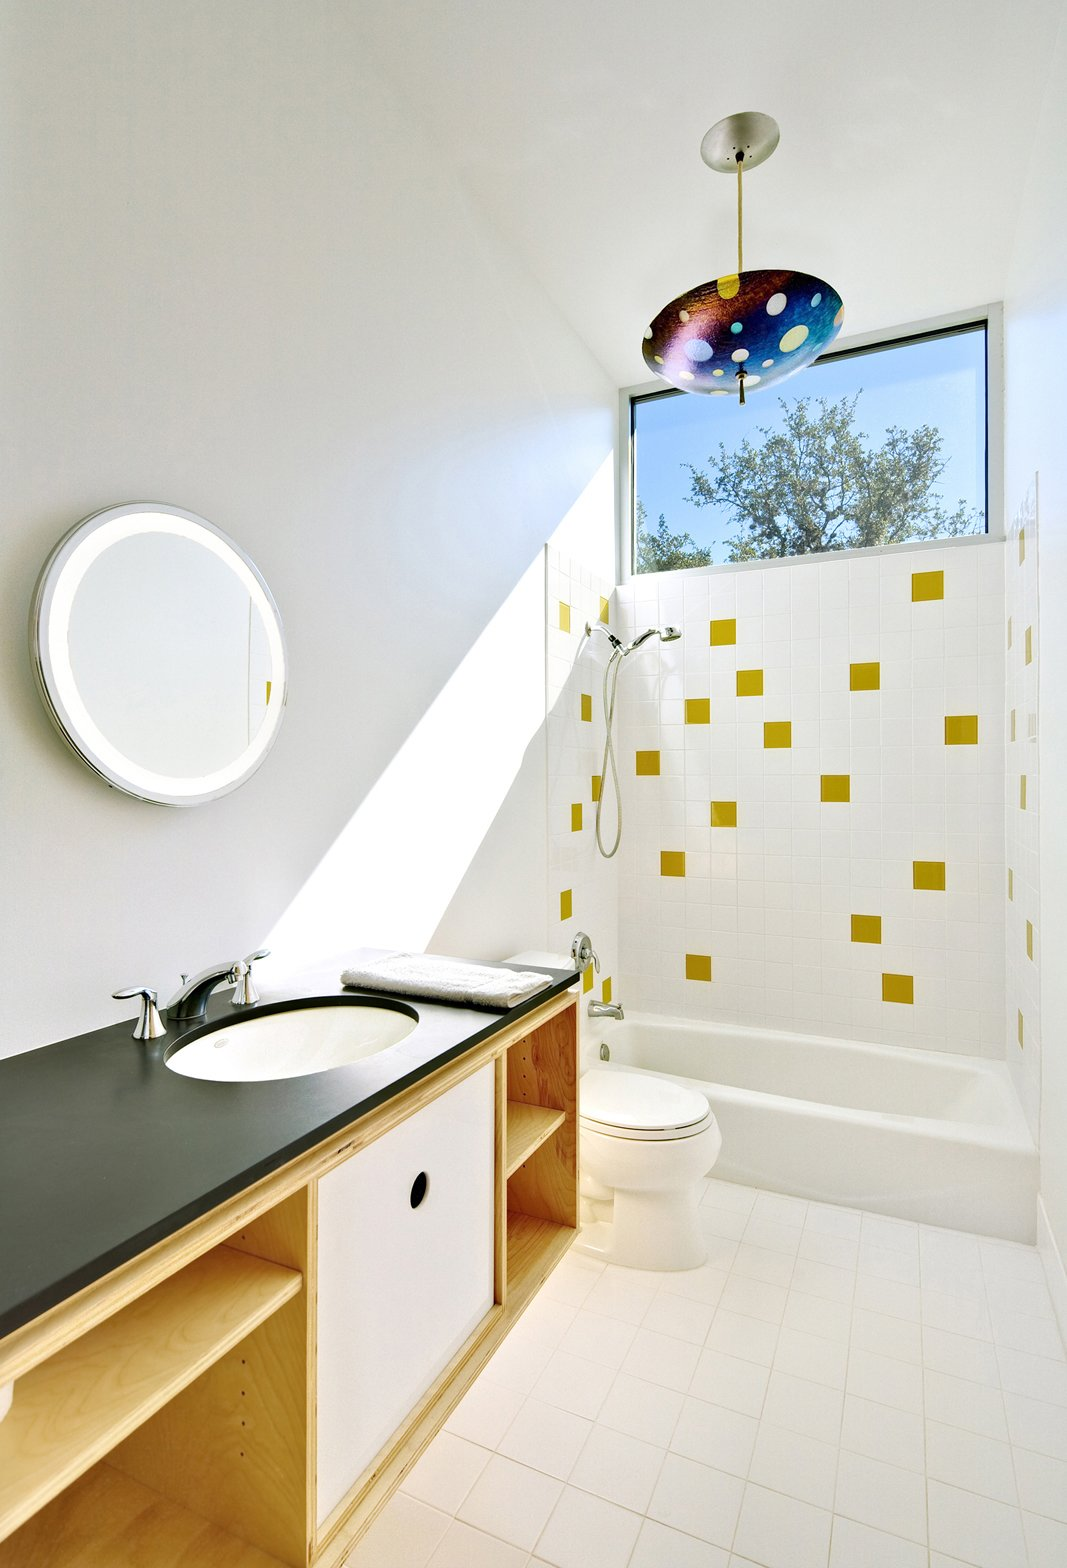 2nd Floor Bathroom  Designed by Cottam Hargrave for Patrick Y Wong of Atelier Wong Photography  Photo 7 of 9 in Texas Two-Step